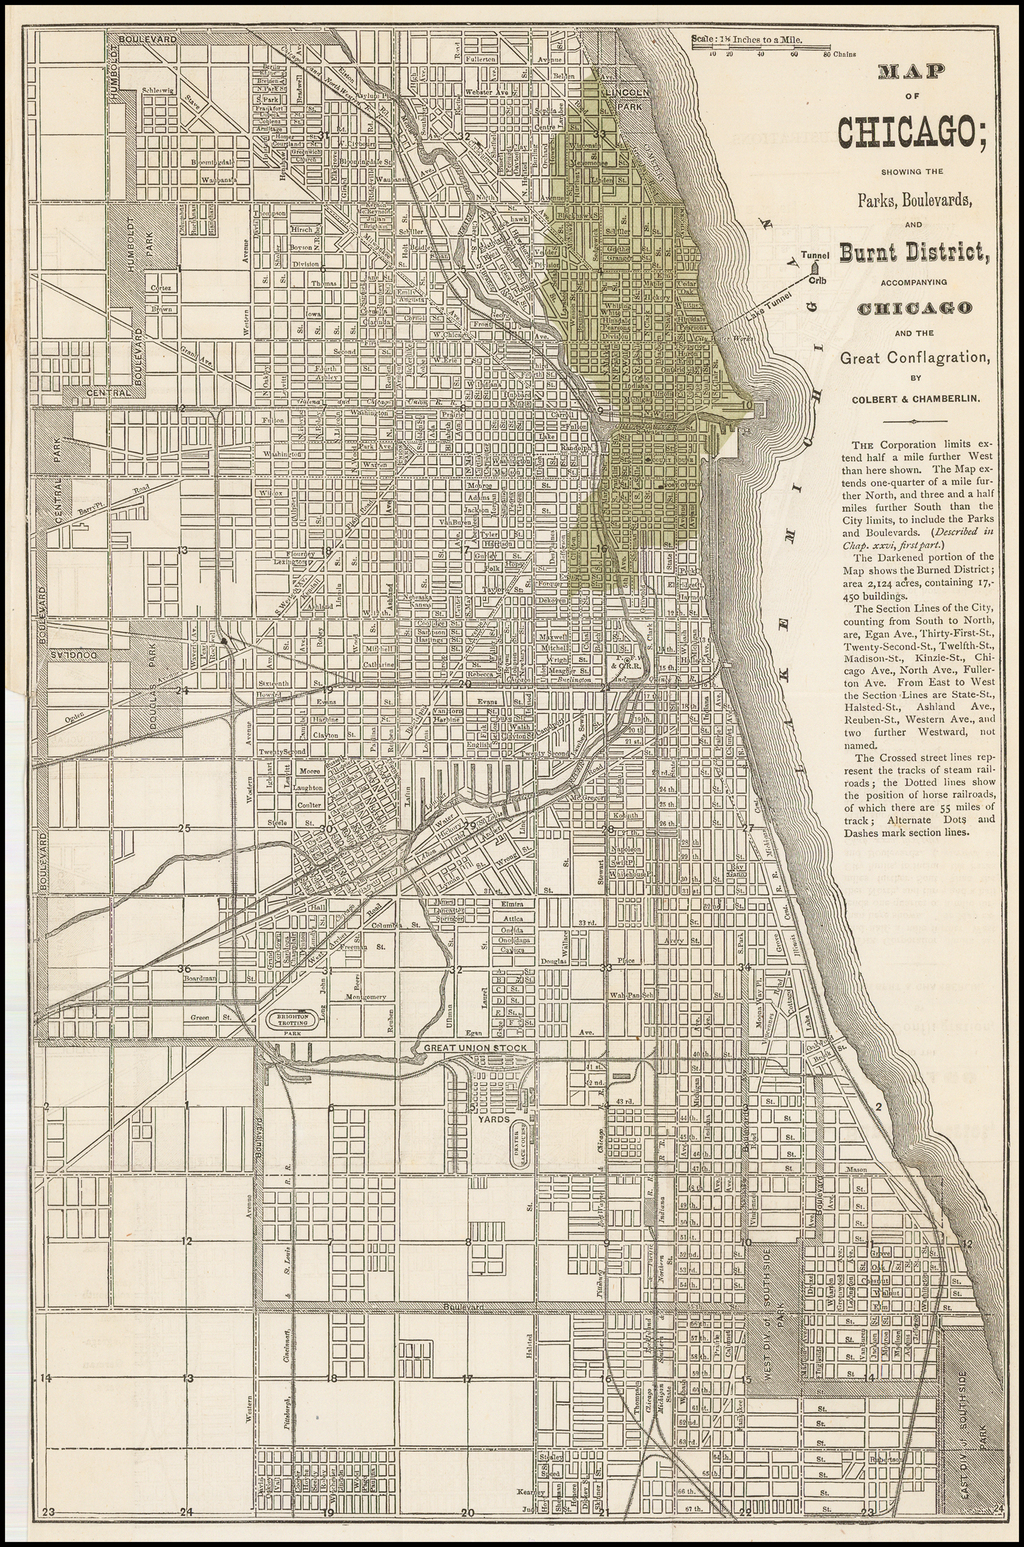 Map of Chicago;  showing the Parks, Boulevards, and Burnt District . . .  By Colbert & Chamberlin